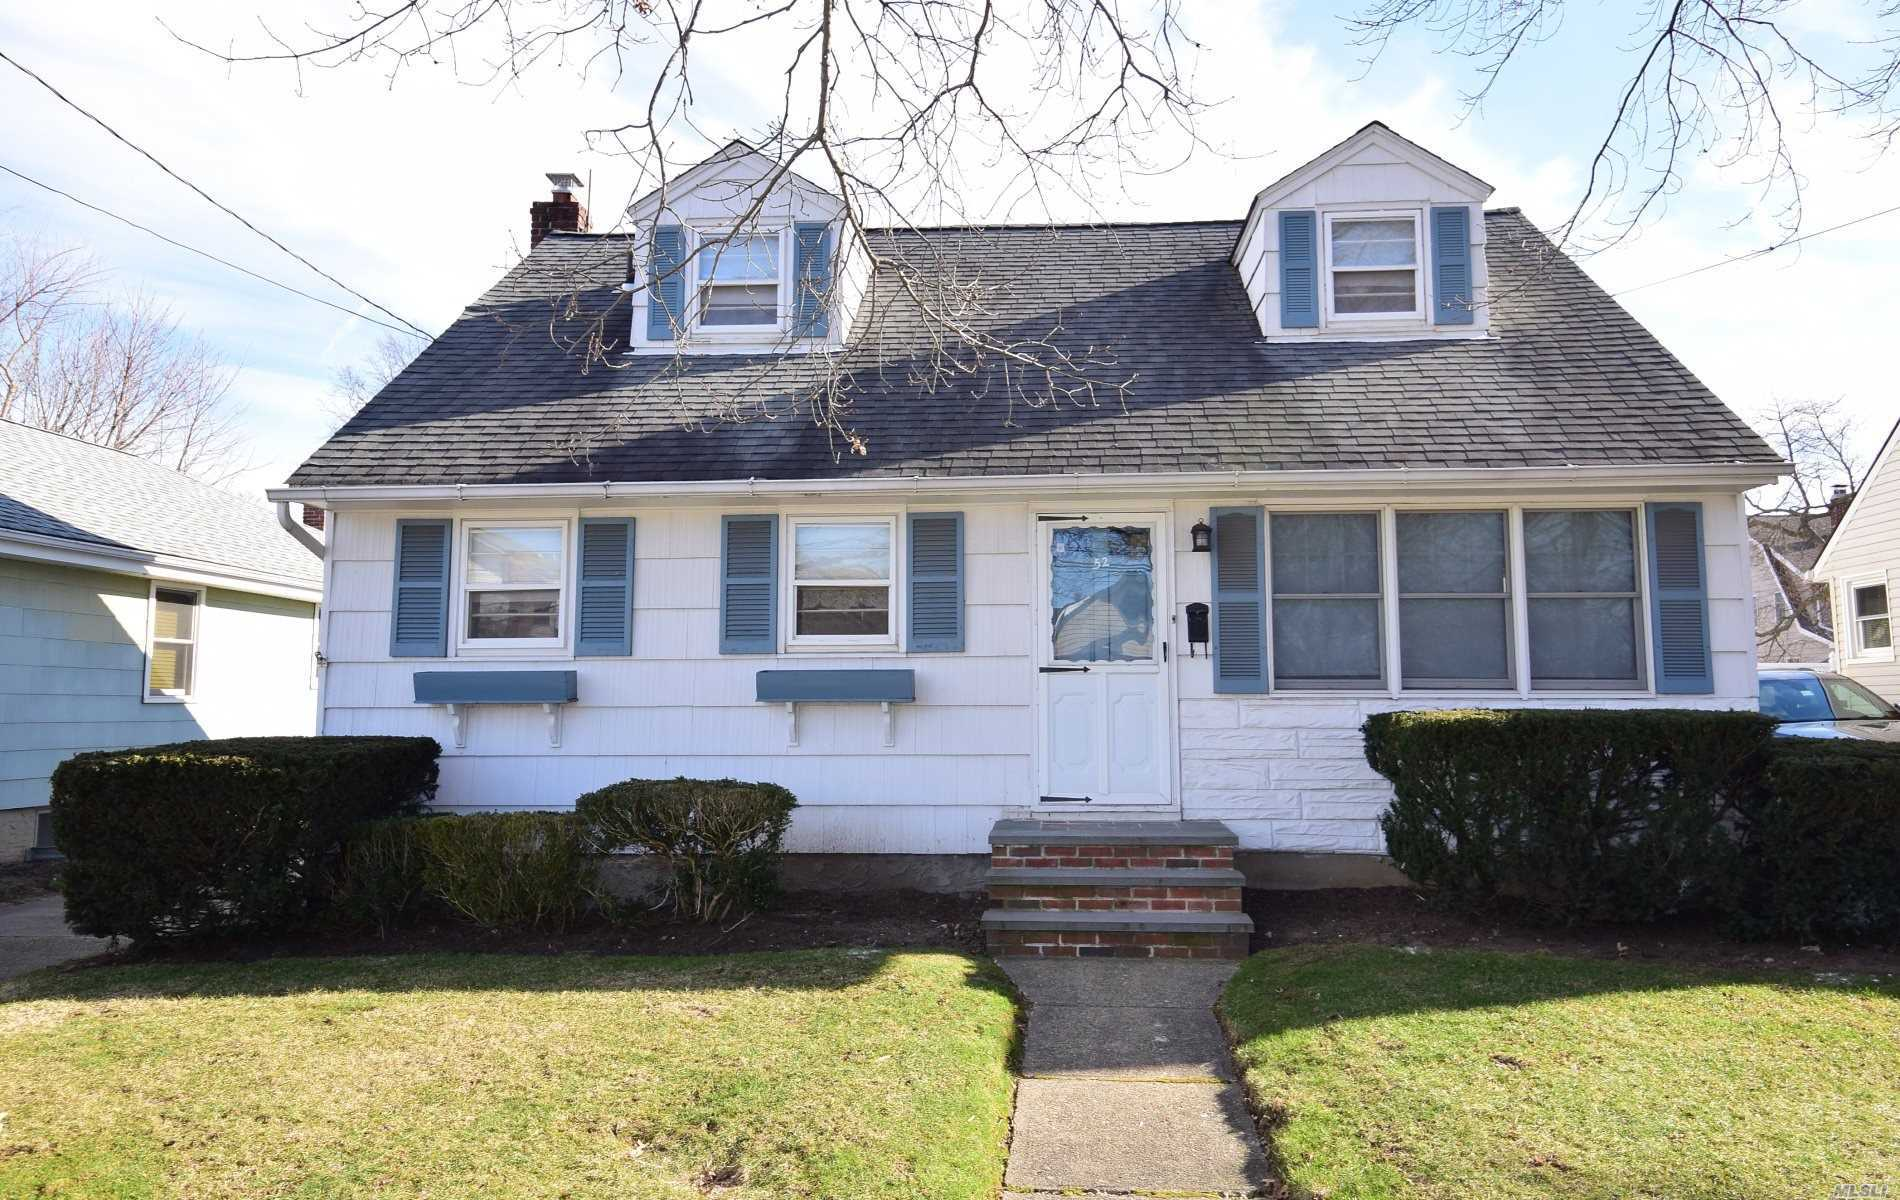 Spacious Cape, Home Features 4 Brs, 2 Full Bths, Living Rm, Oversized Eik, Dining Rm/Den, Full Basement With High Ceilings, 2 Car Garage. Located On Residential Block, Short Distance To Rail Road, Shops, Greiss Park. Tax Grievance Has Been Filed + Seller To Offer $3, 000 Towards 2019 Taxes.